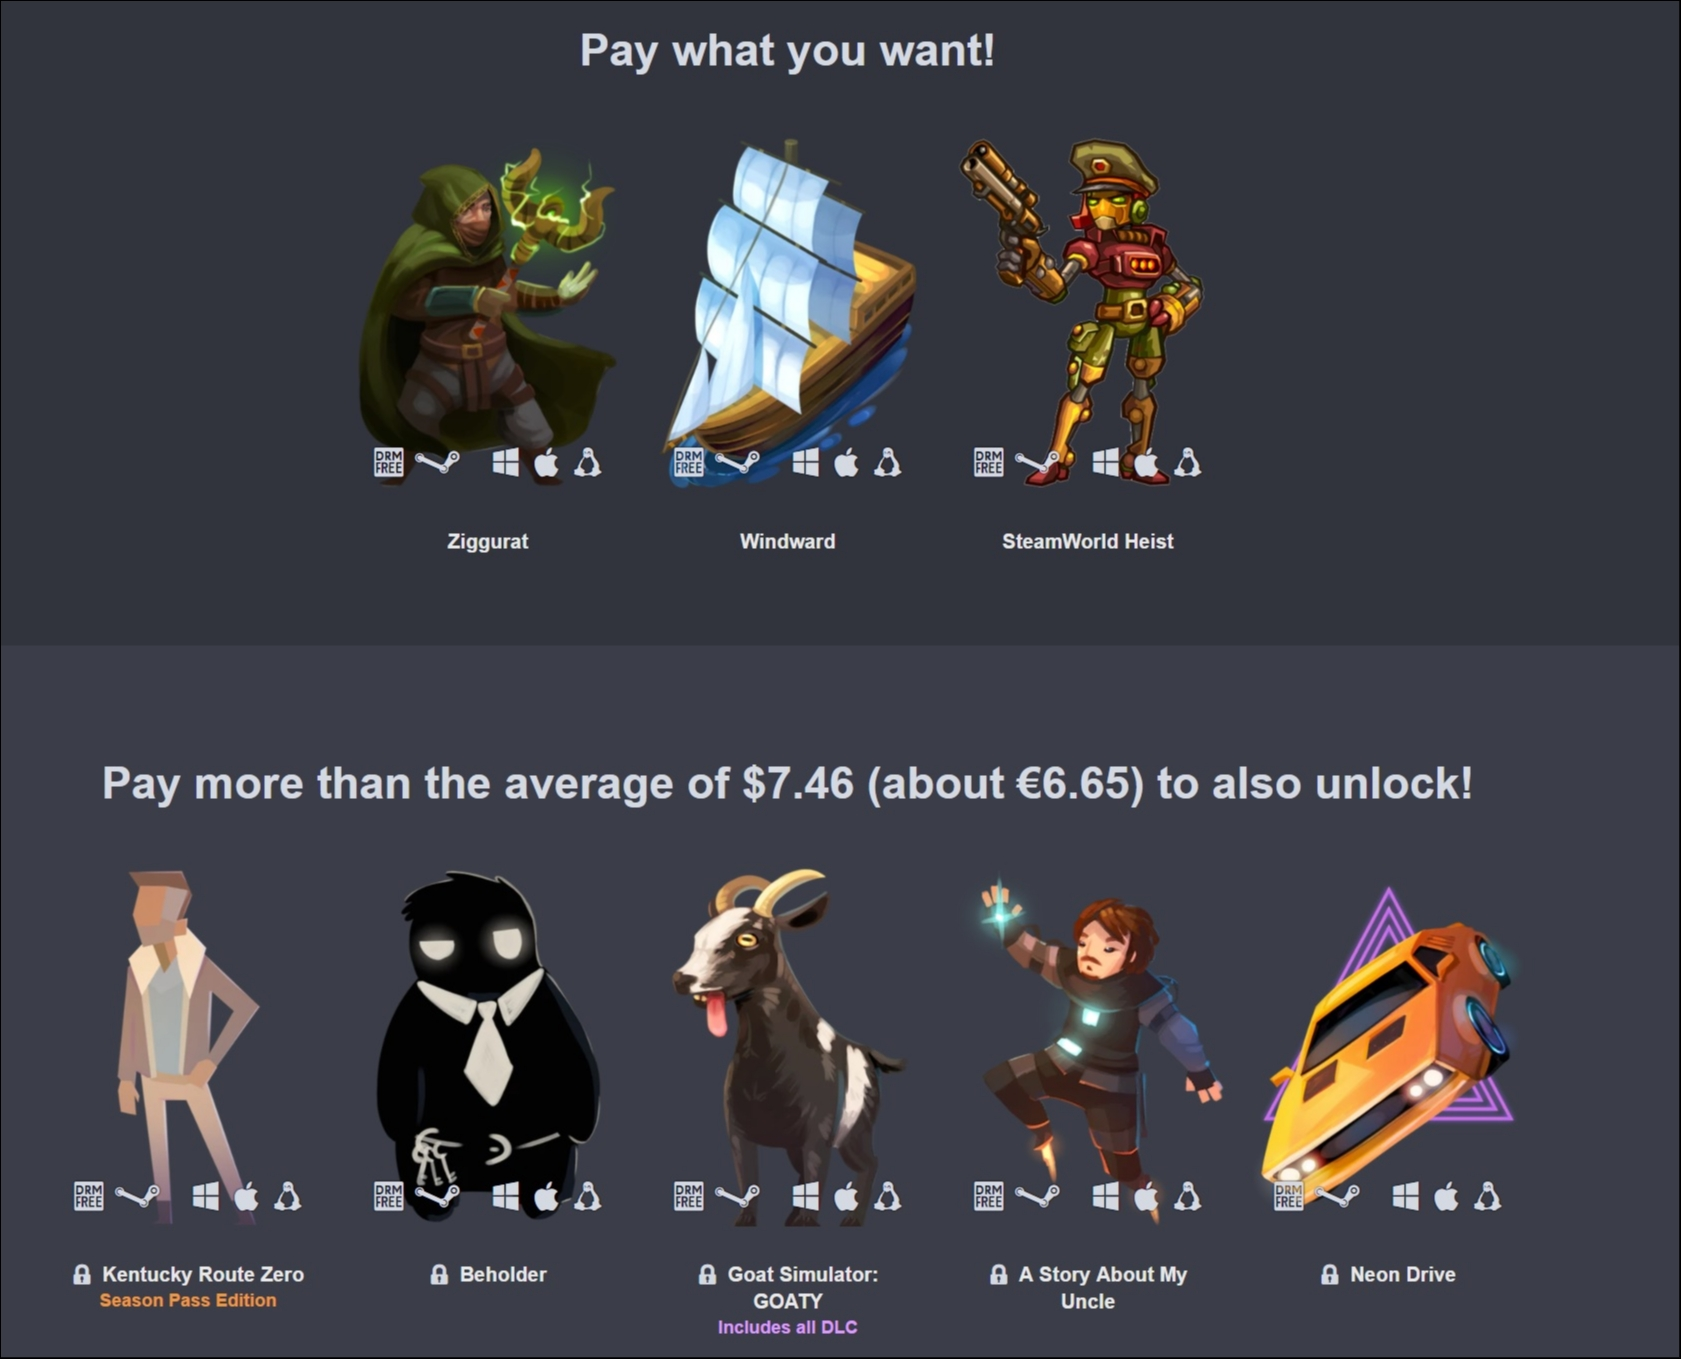 humble-bundle-3-1495619590.jpg